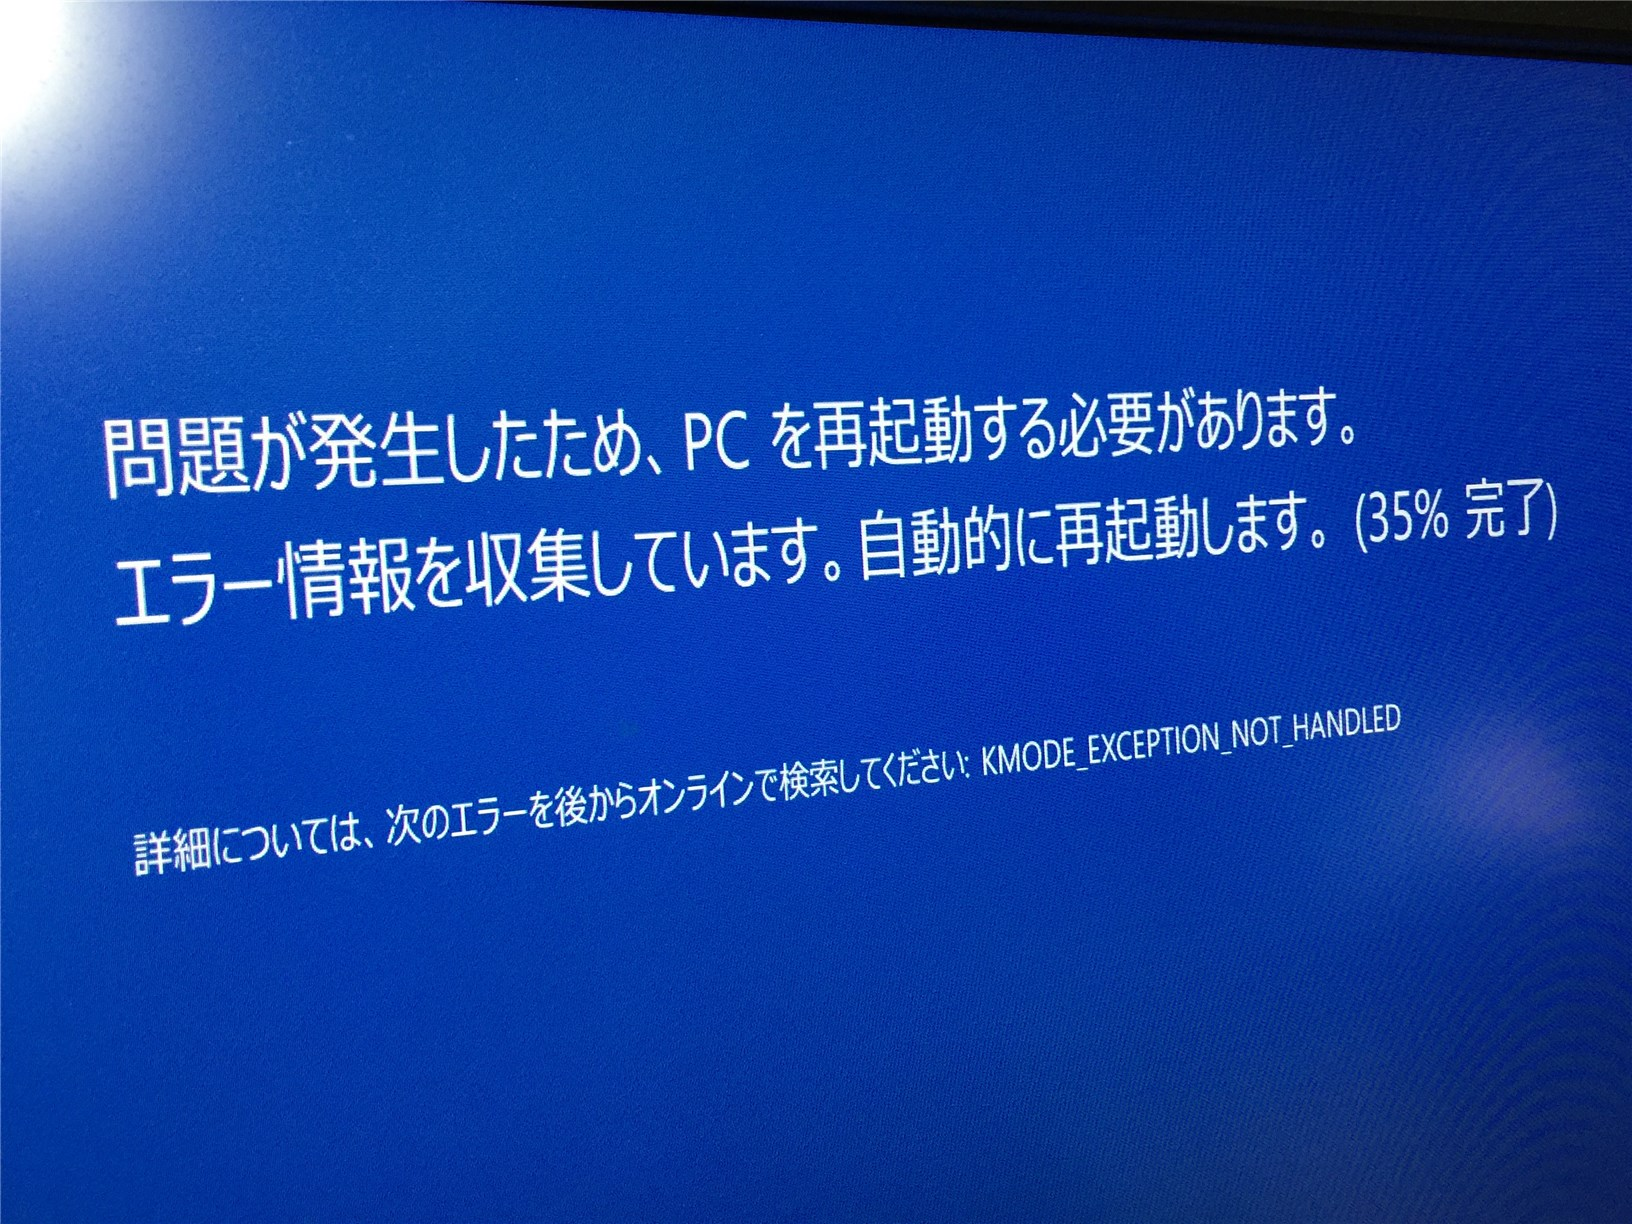 windows-10-blue-screen-kmode-exception-not-handled